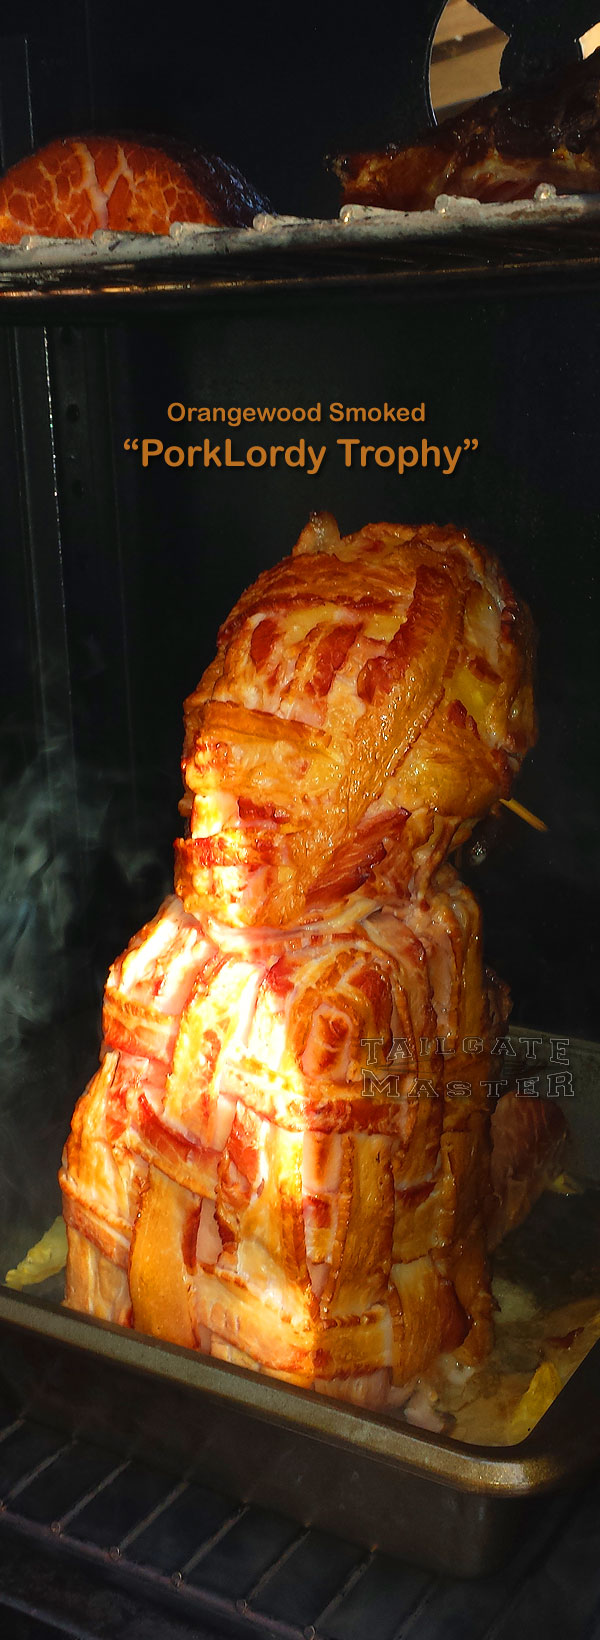 Super Bowl Sunday party centerpiece mmmmm bacon wrapped ham and pineapple